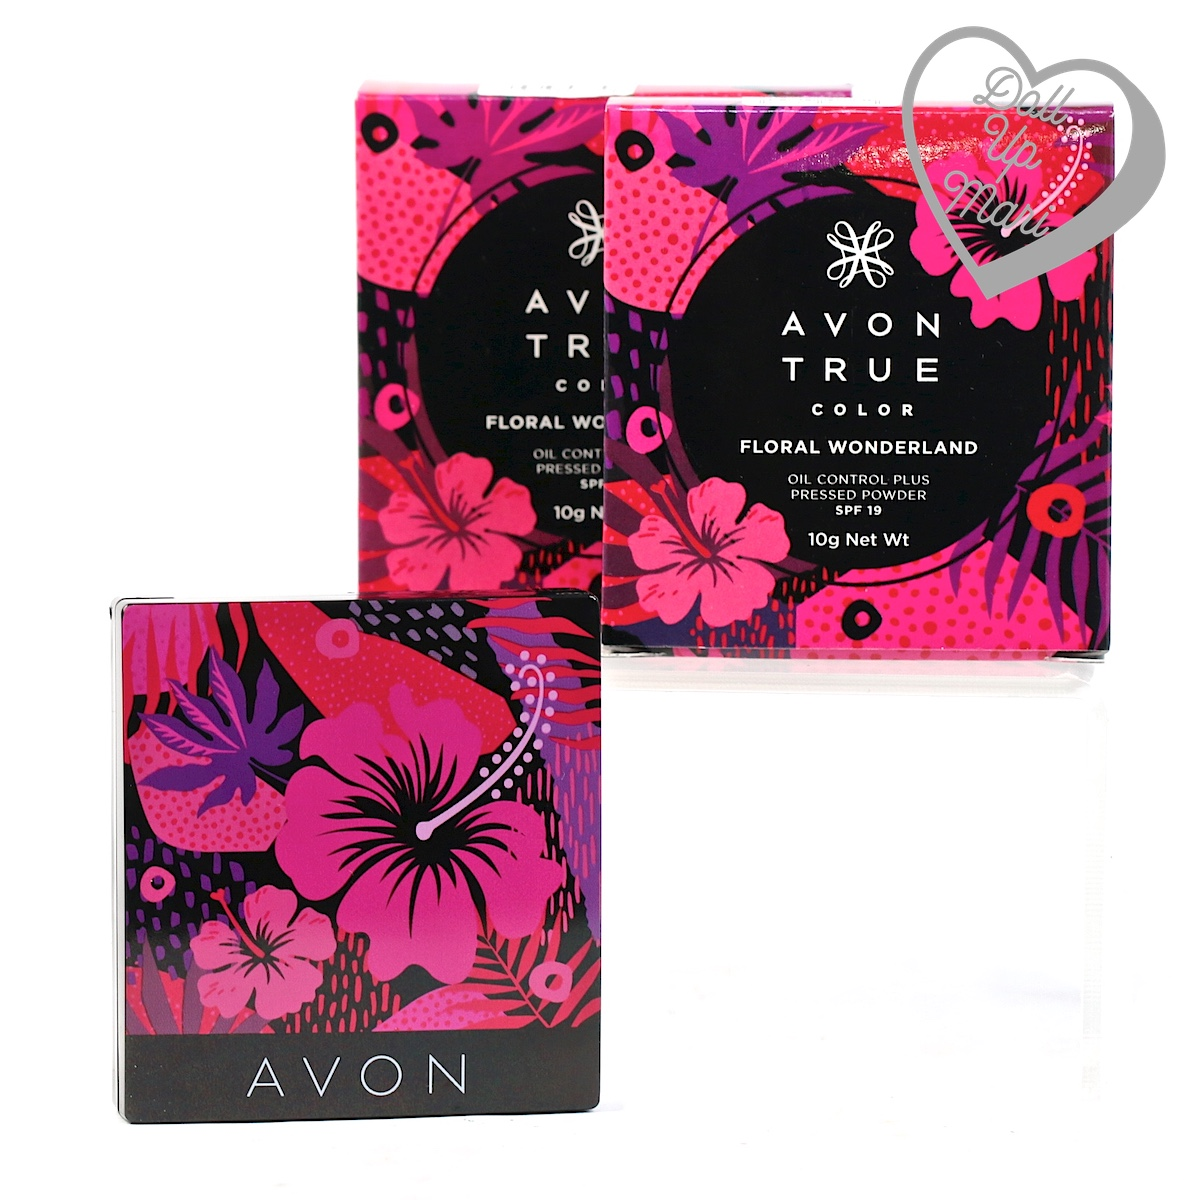 AVON Floral Wonderland Oil Control Plus Pressed Powder Pack Shot